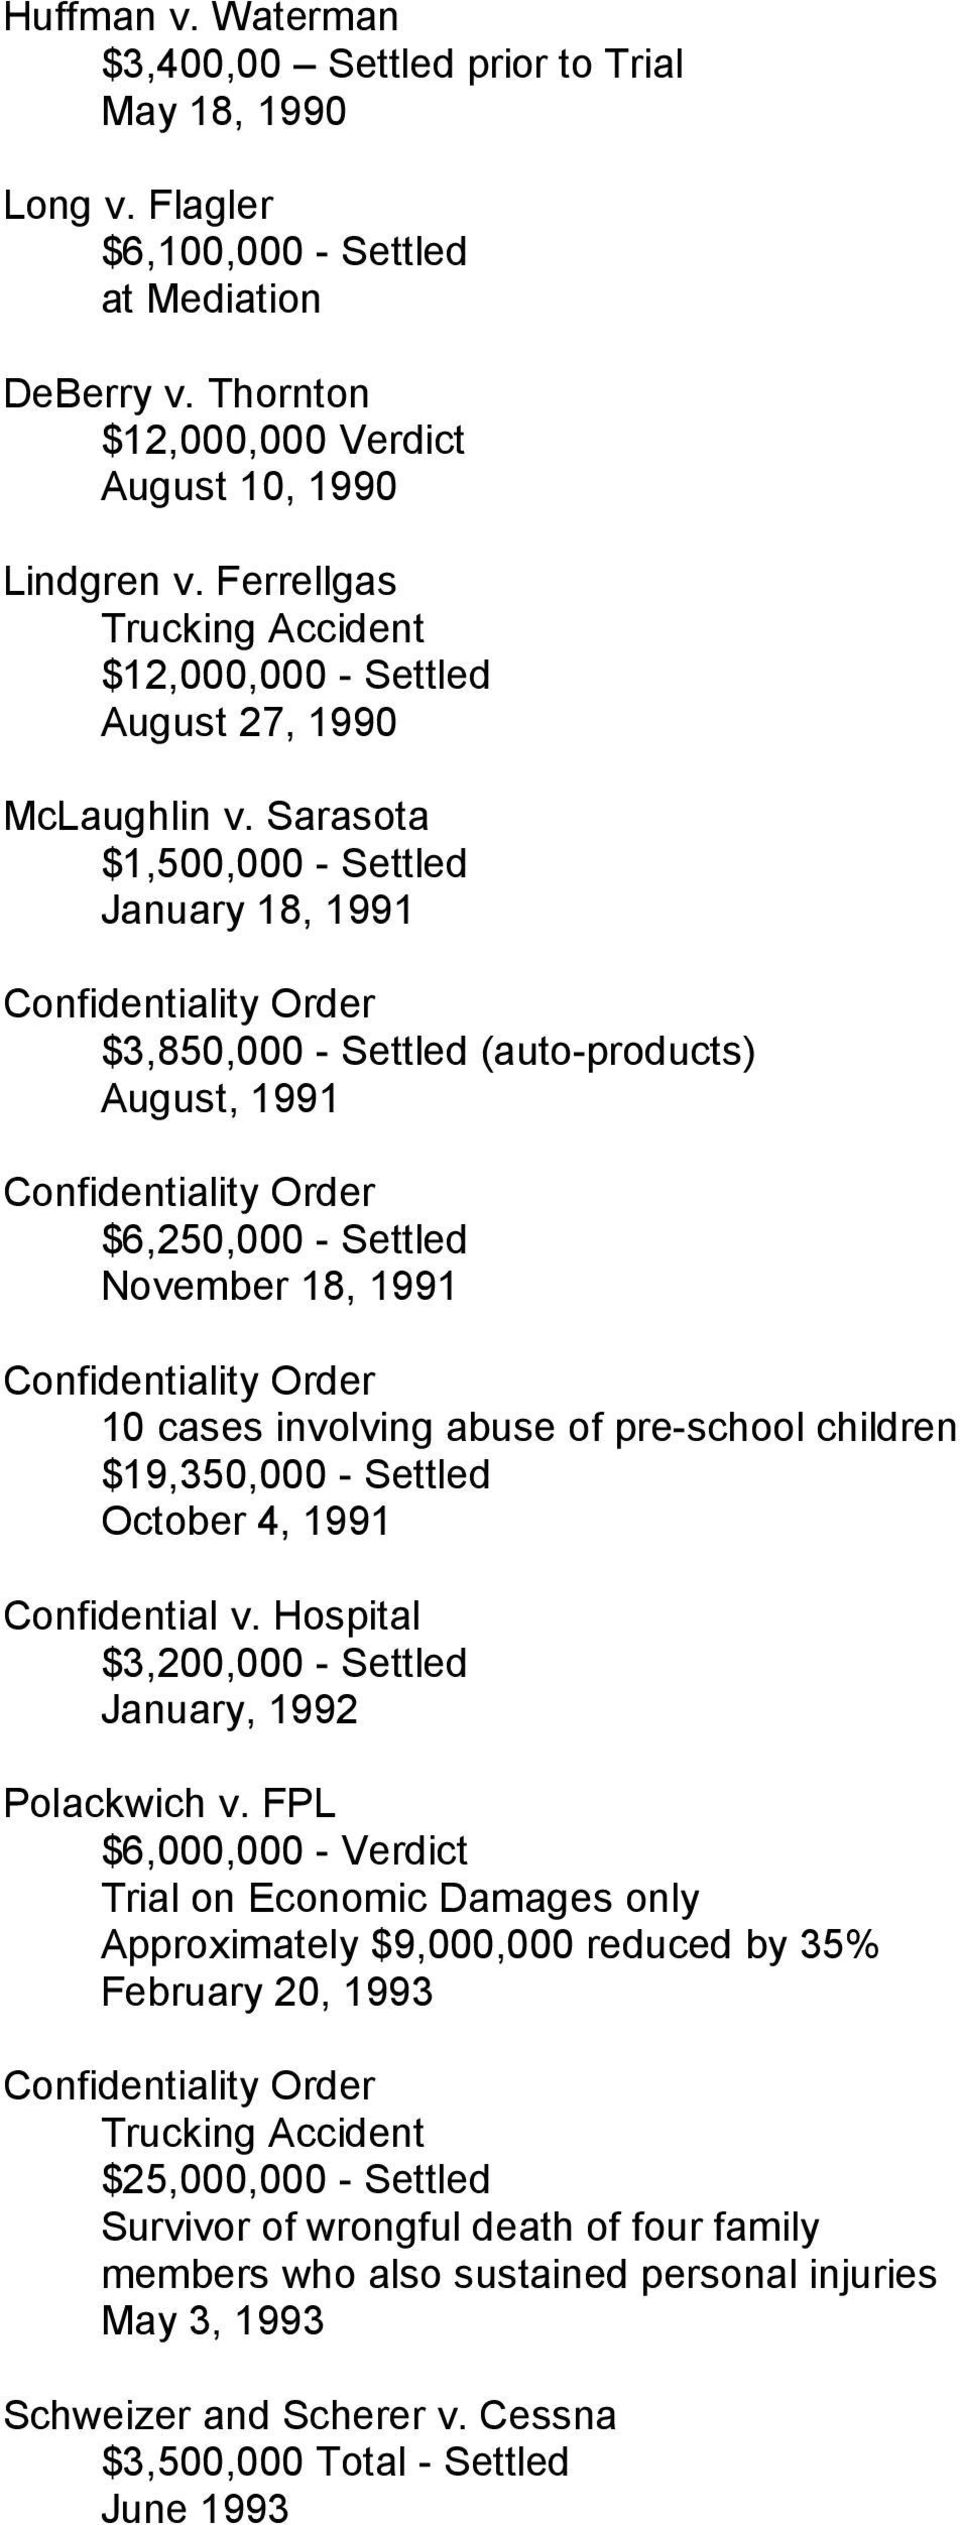 Sarasota $1,500,000 - Settled January 18, 1991 ity Order $3,850,000 - Settled (auto-products) August, 1991 ity Order $6,250,000 - Settled November 18, 1991 ity Order 10 cases involving abuse of